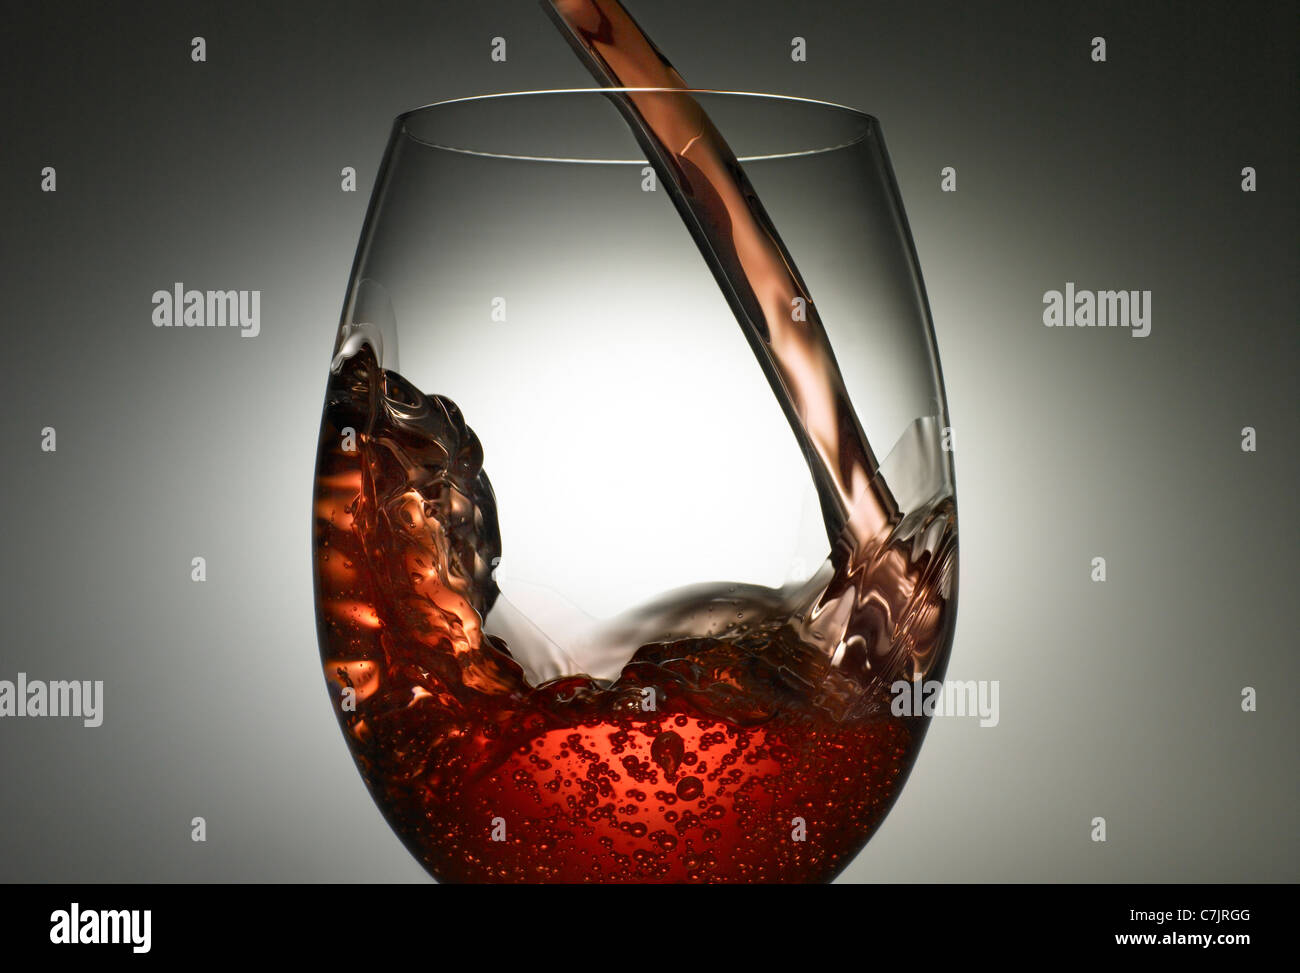 Close up of wine pouring into glass - Stock Image